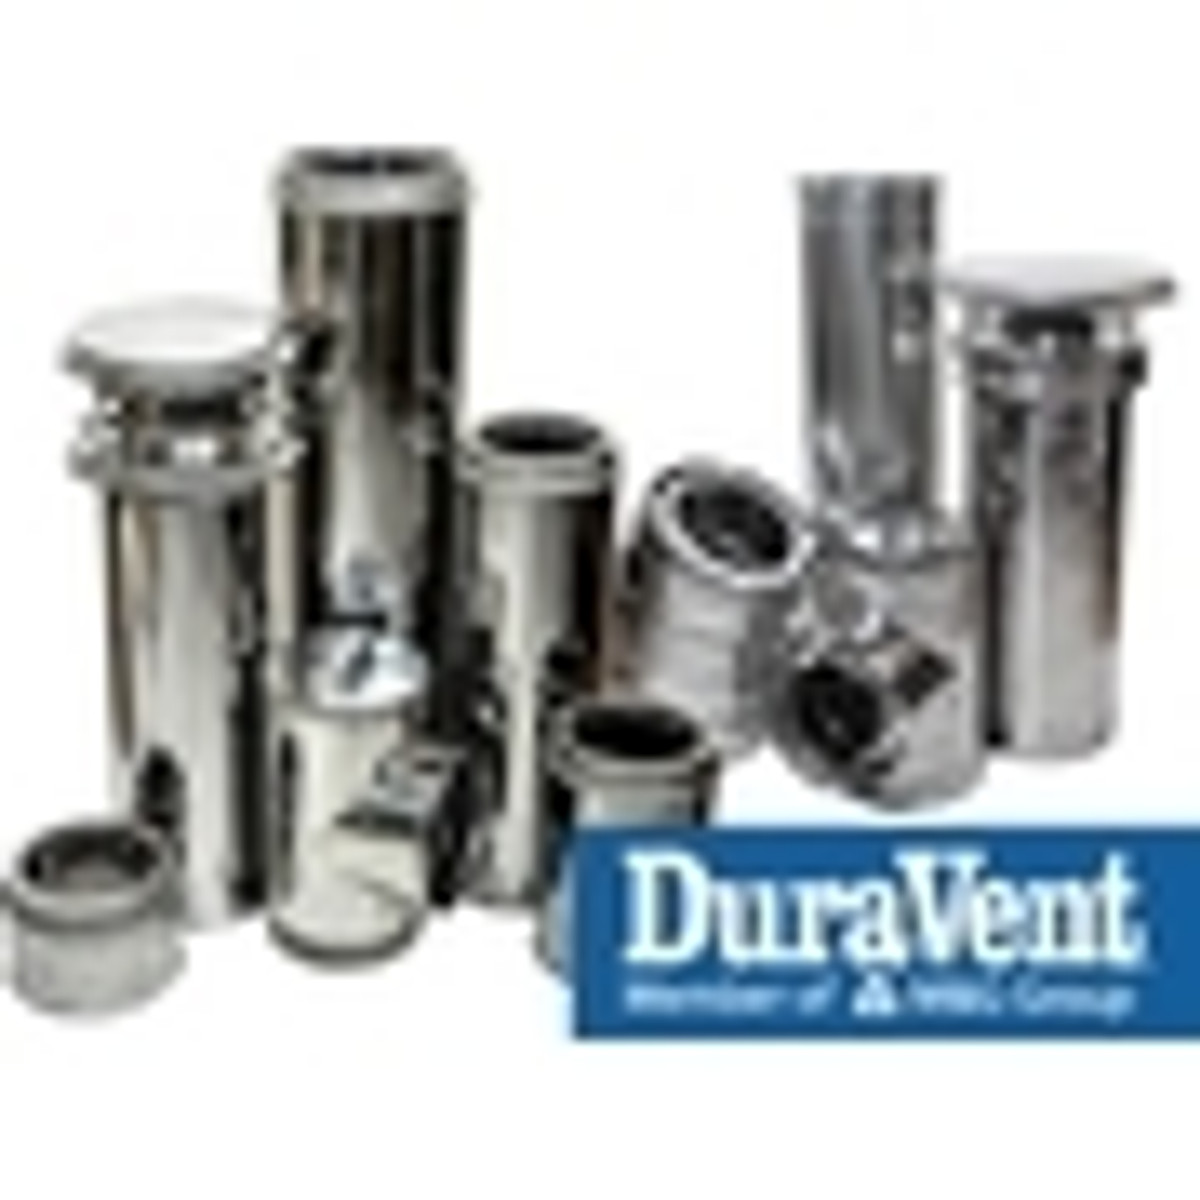 16'' DuraTech Chimney Pipe